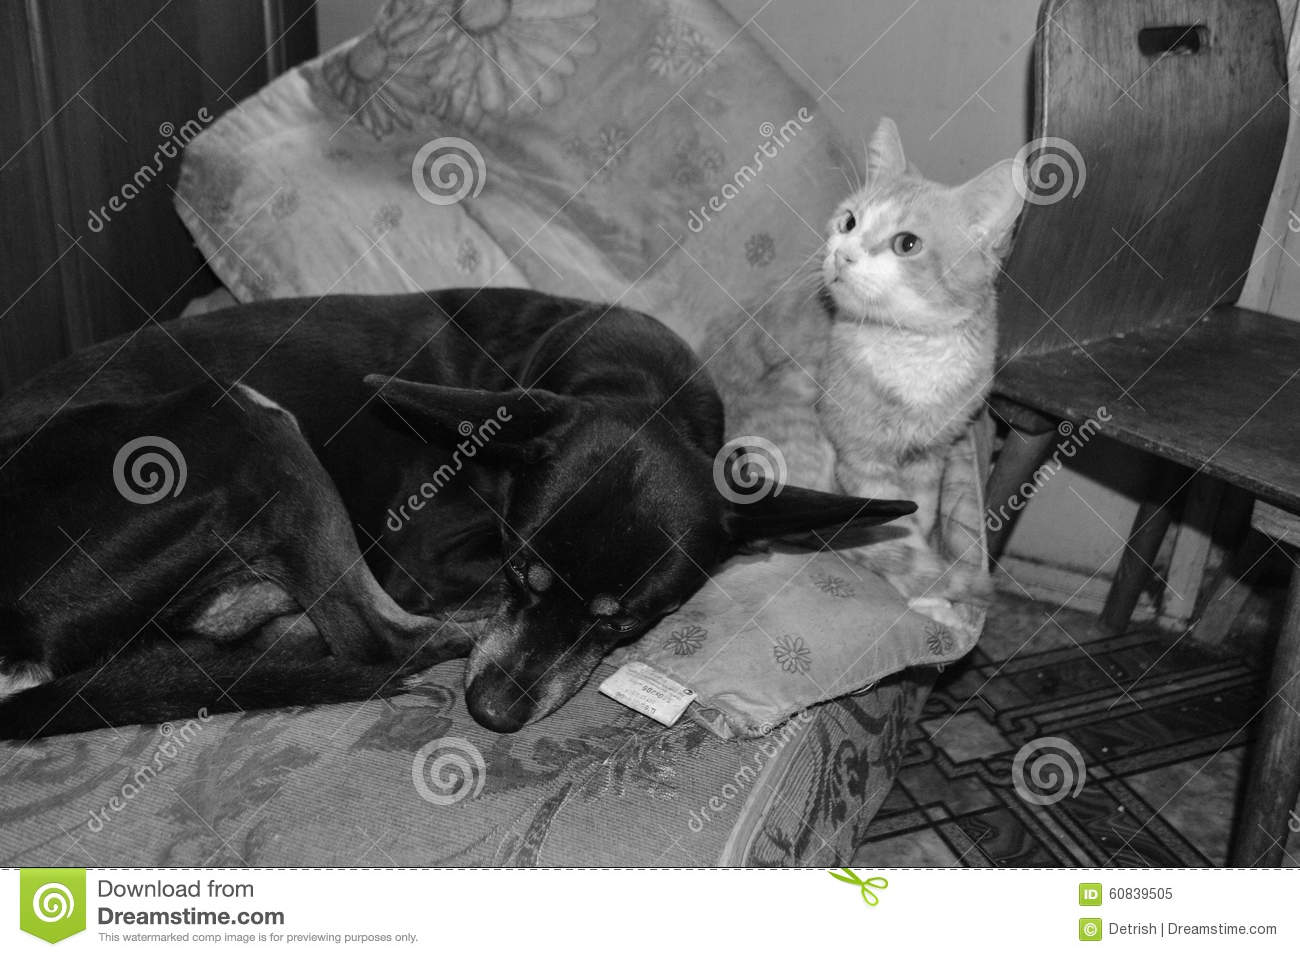 black dog and red cat sleeping together stock photo - image: 60839505